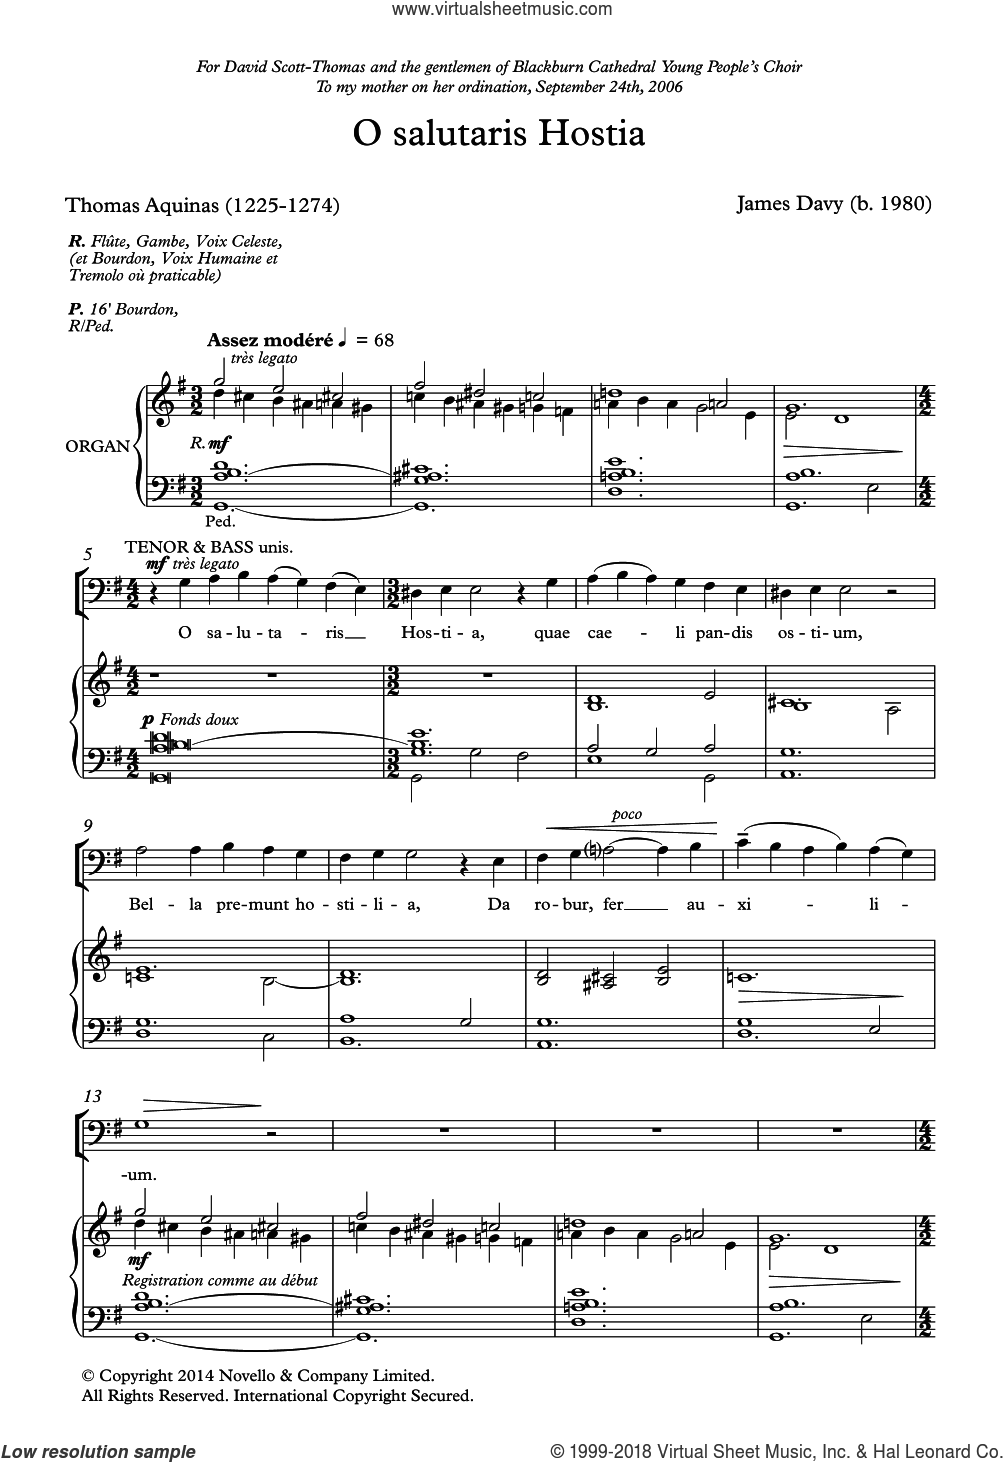 O Salutaris Hostia sheet music for choir by James Davy and Thomas Aquinas, classical score, intermediate skill level